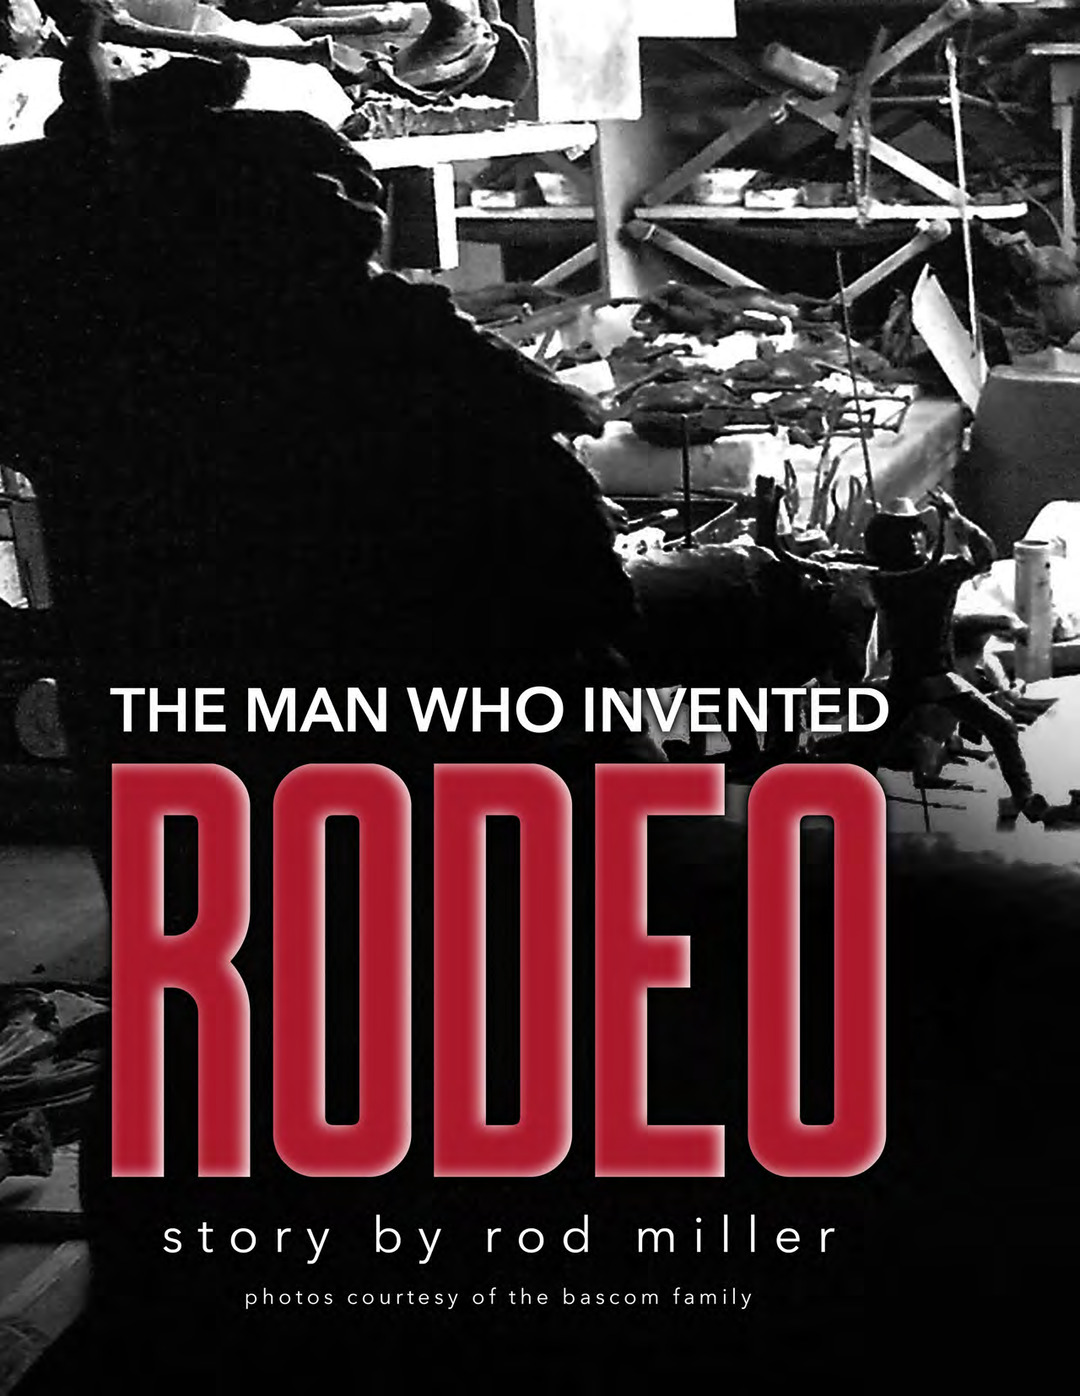 Page 90 of The Man Who Invented Rodeo